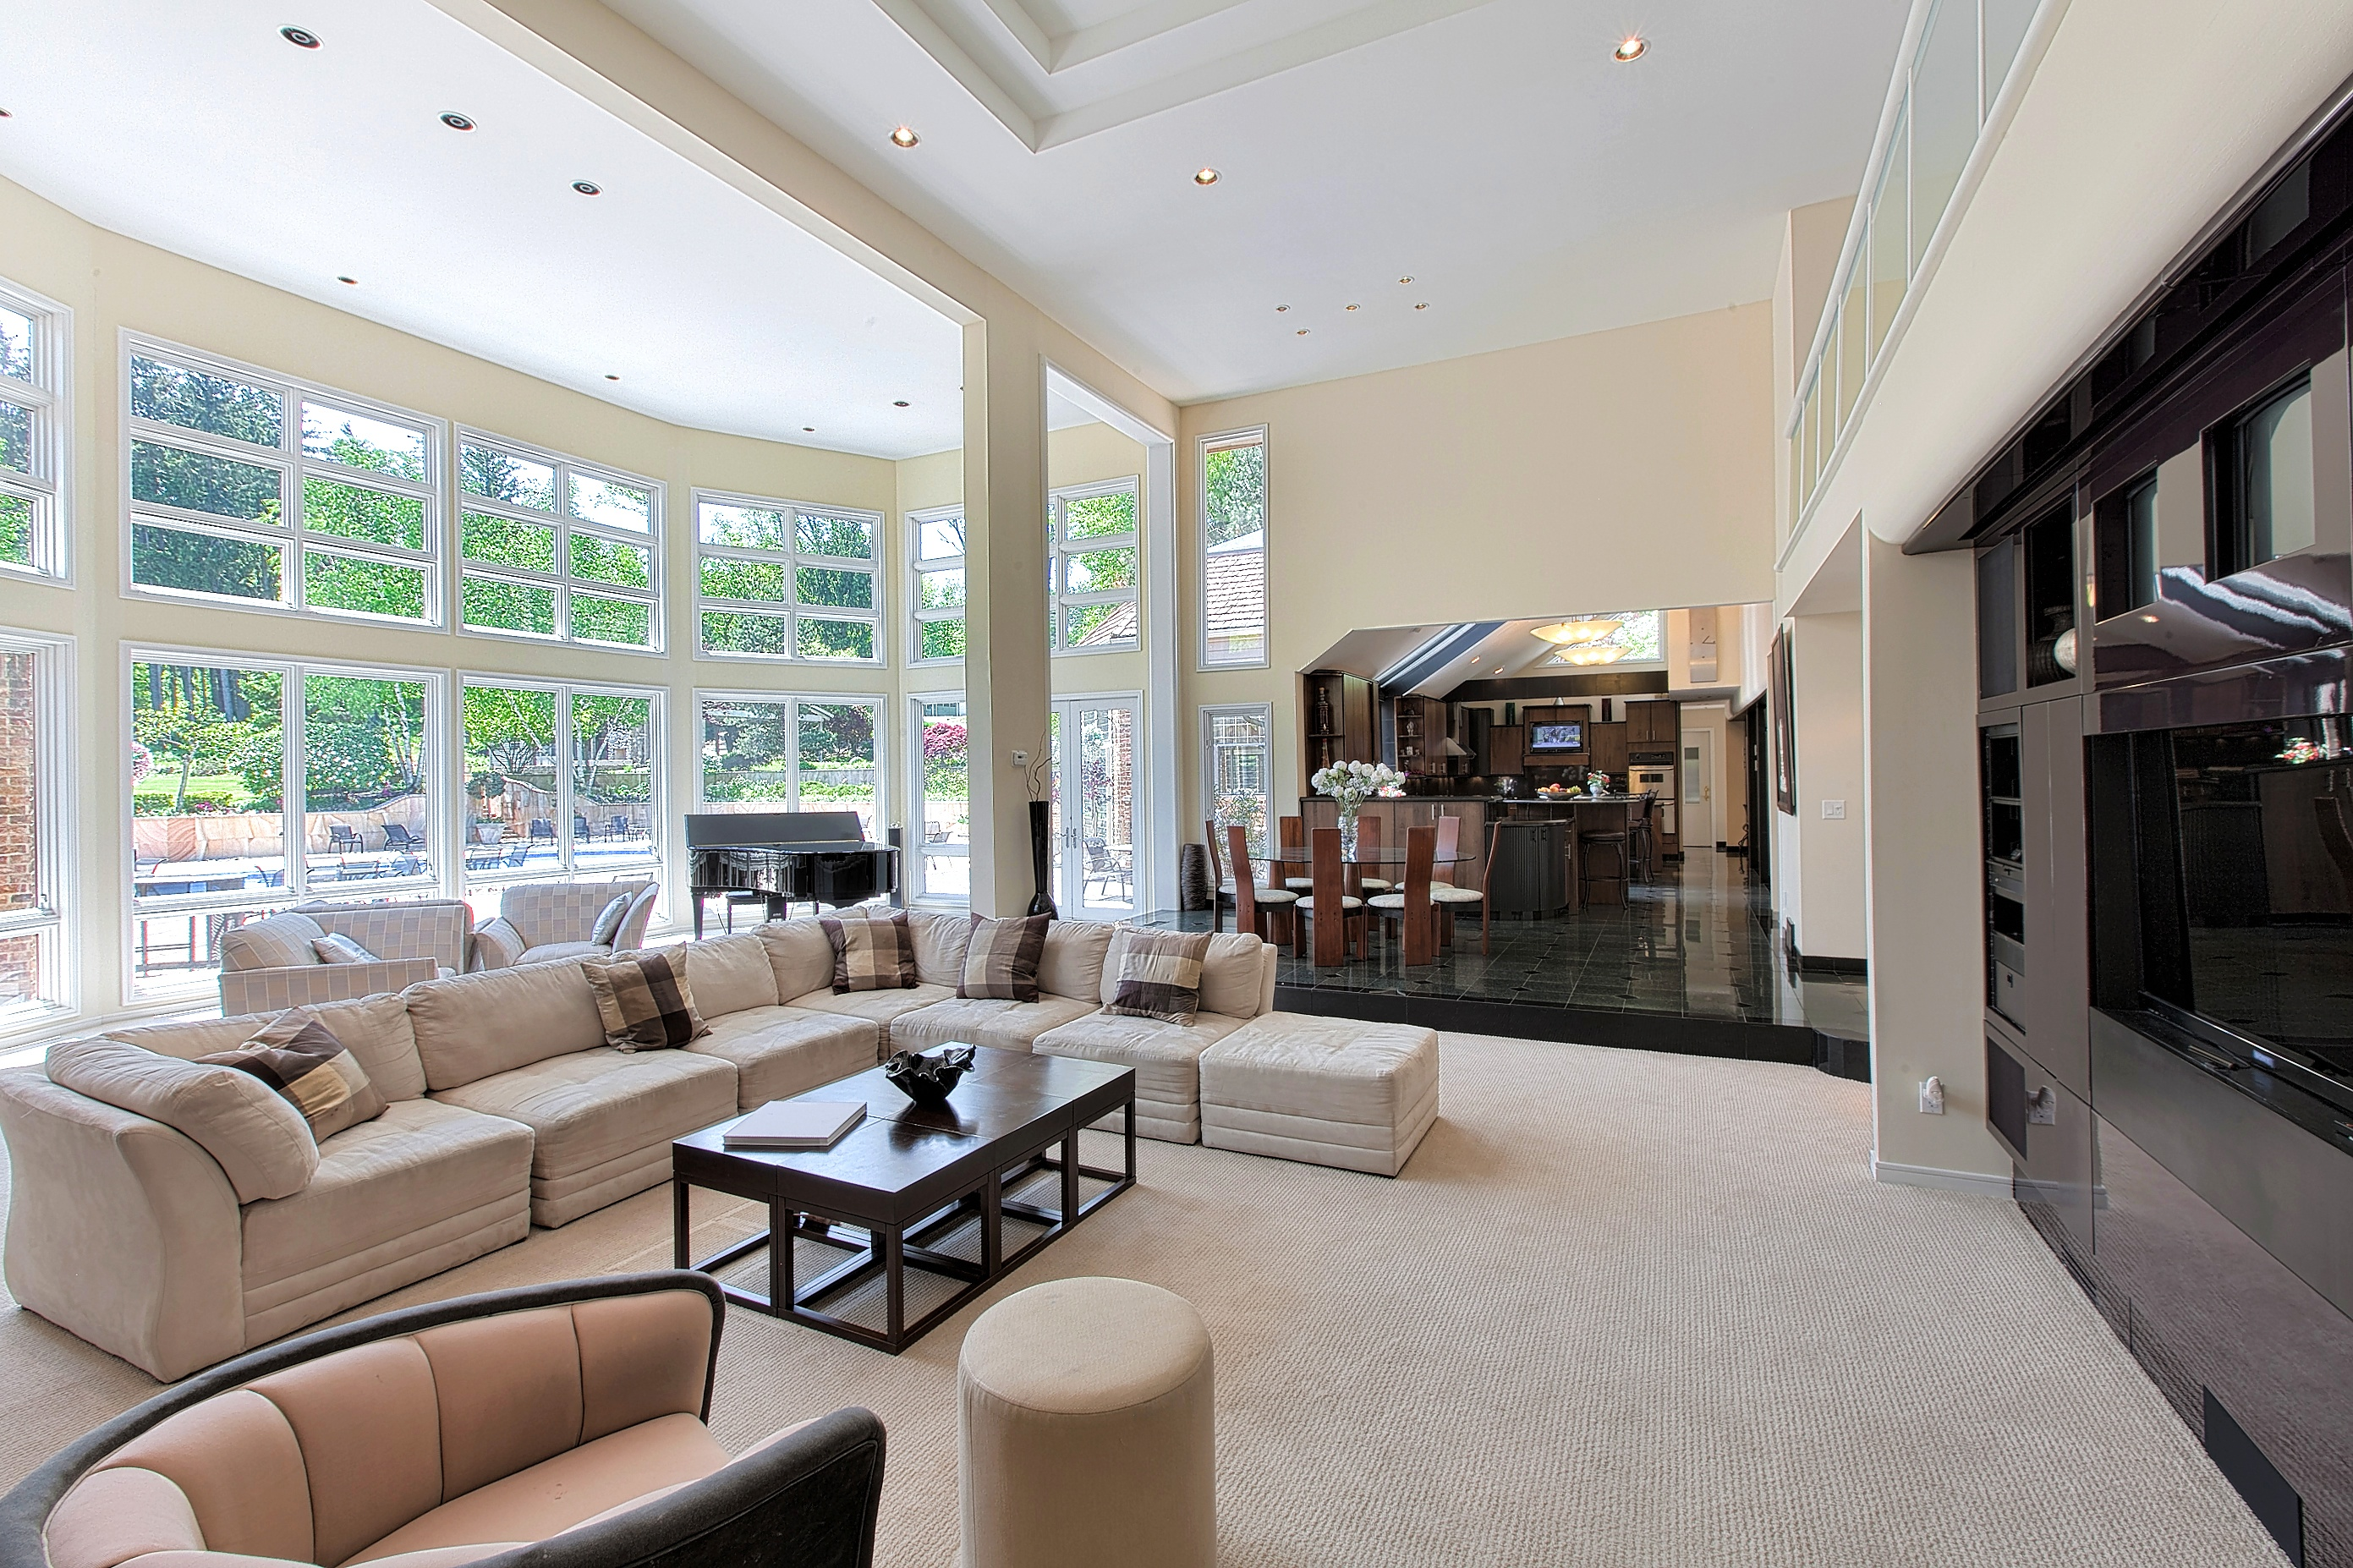 Gallery in addition Interior additionally Rochester In Kent Is Having A Miniboom Goodvalue Homes Within A 35minute  mute To London A98406 in addition Cushions further Jean Louis Deniot Tastemaker. on luxury home interiors